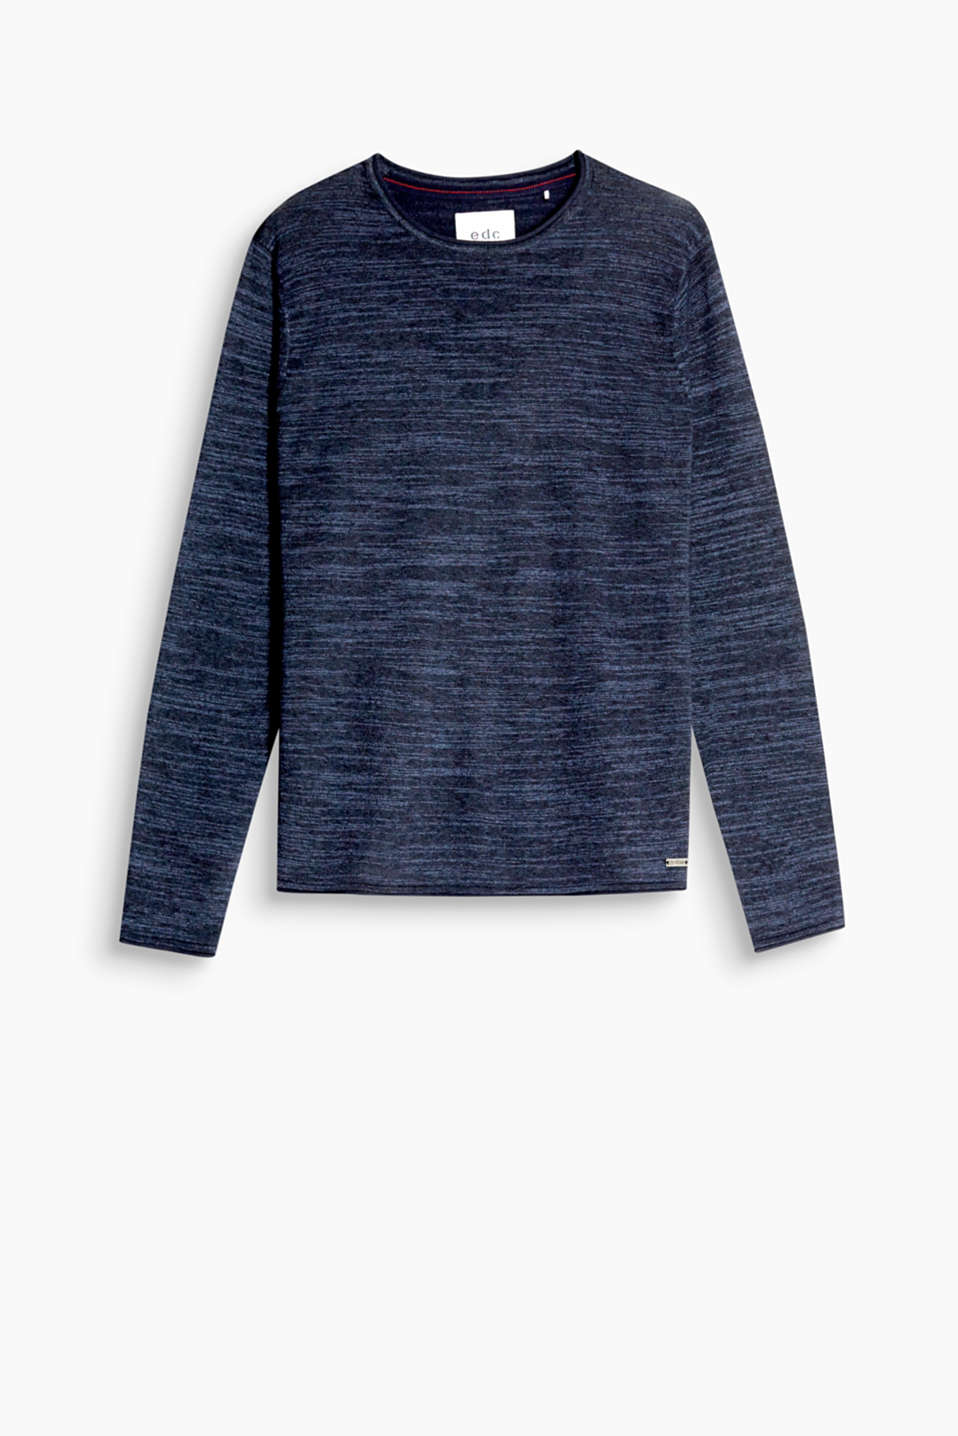 Soft cotton blend jumper with a round neckline and rolled edges